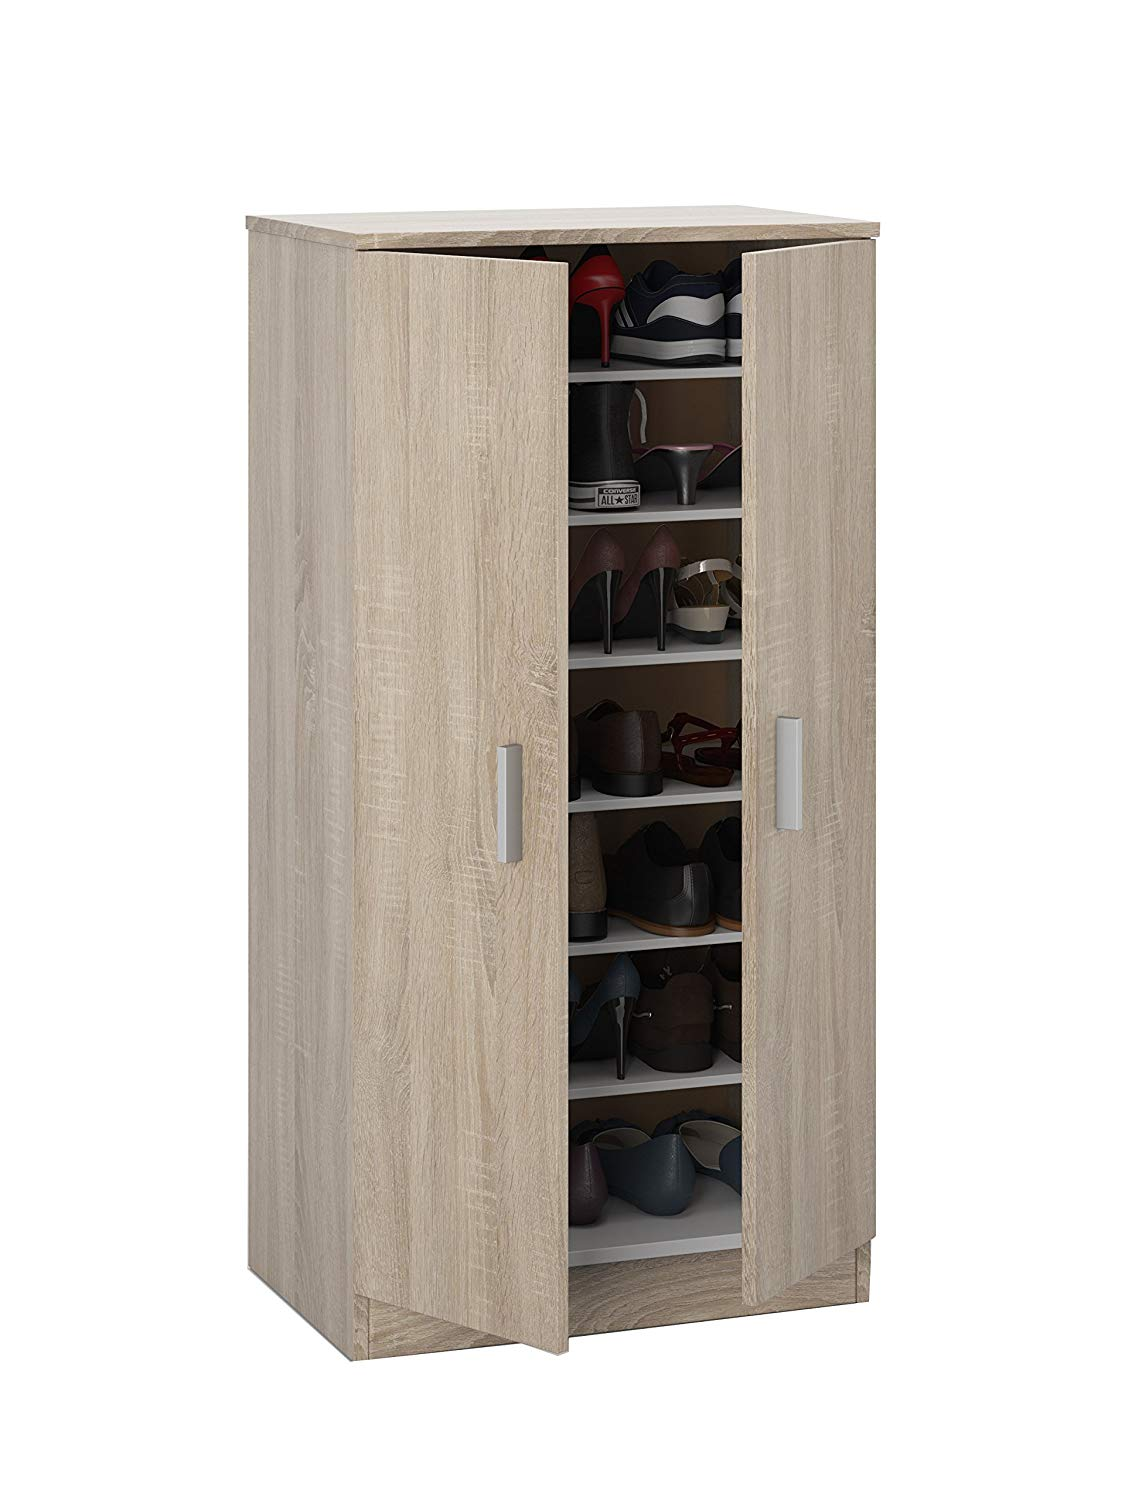 Habitdesign - Basic Zapatero Two Doors Shoe Cabinet RRP £79.99